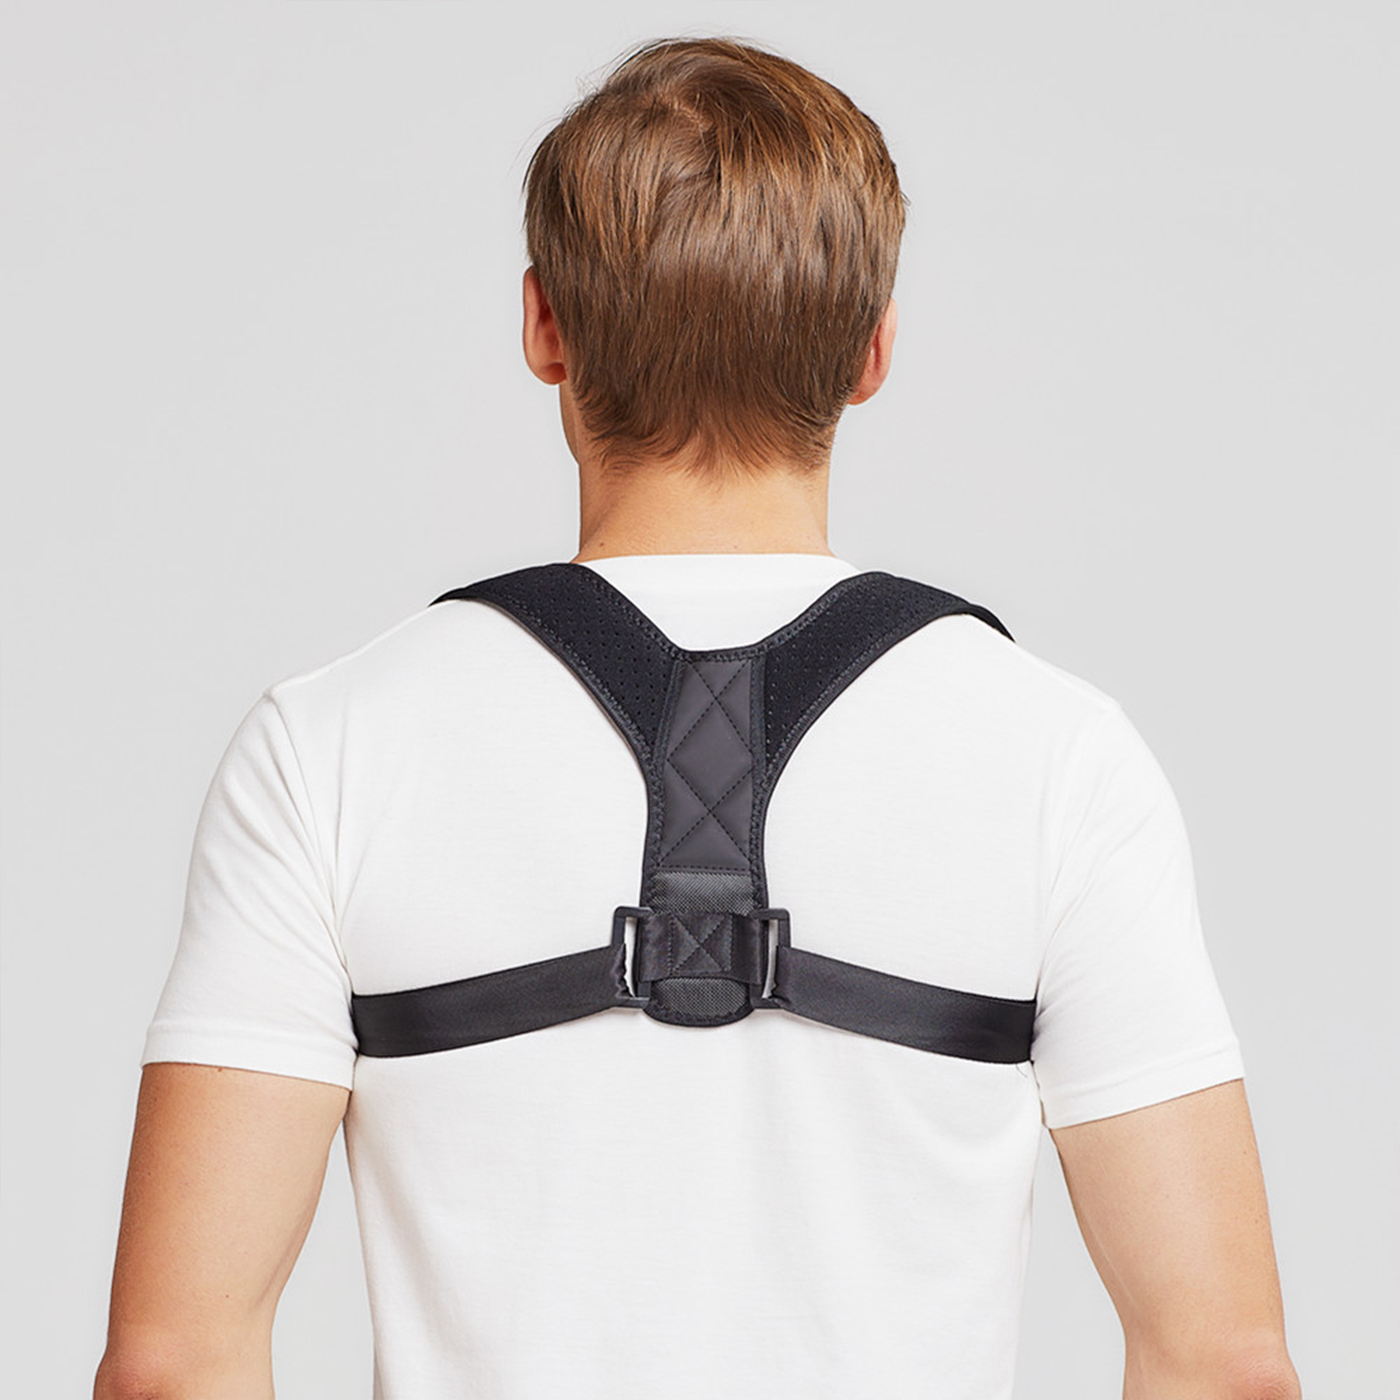 Brace Support Belt Back Posture Corrector Brace Shoulder Lumbar Posture Correction Spine Corrector Back Shoulder Pain Support